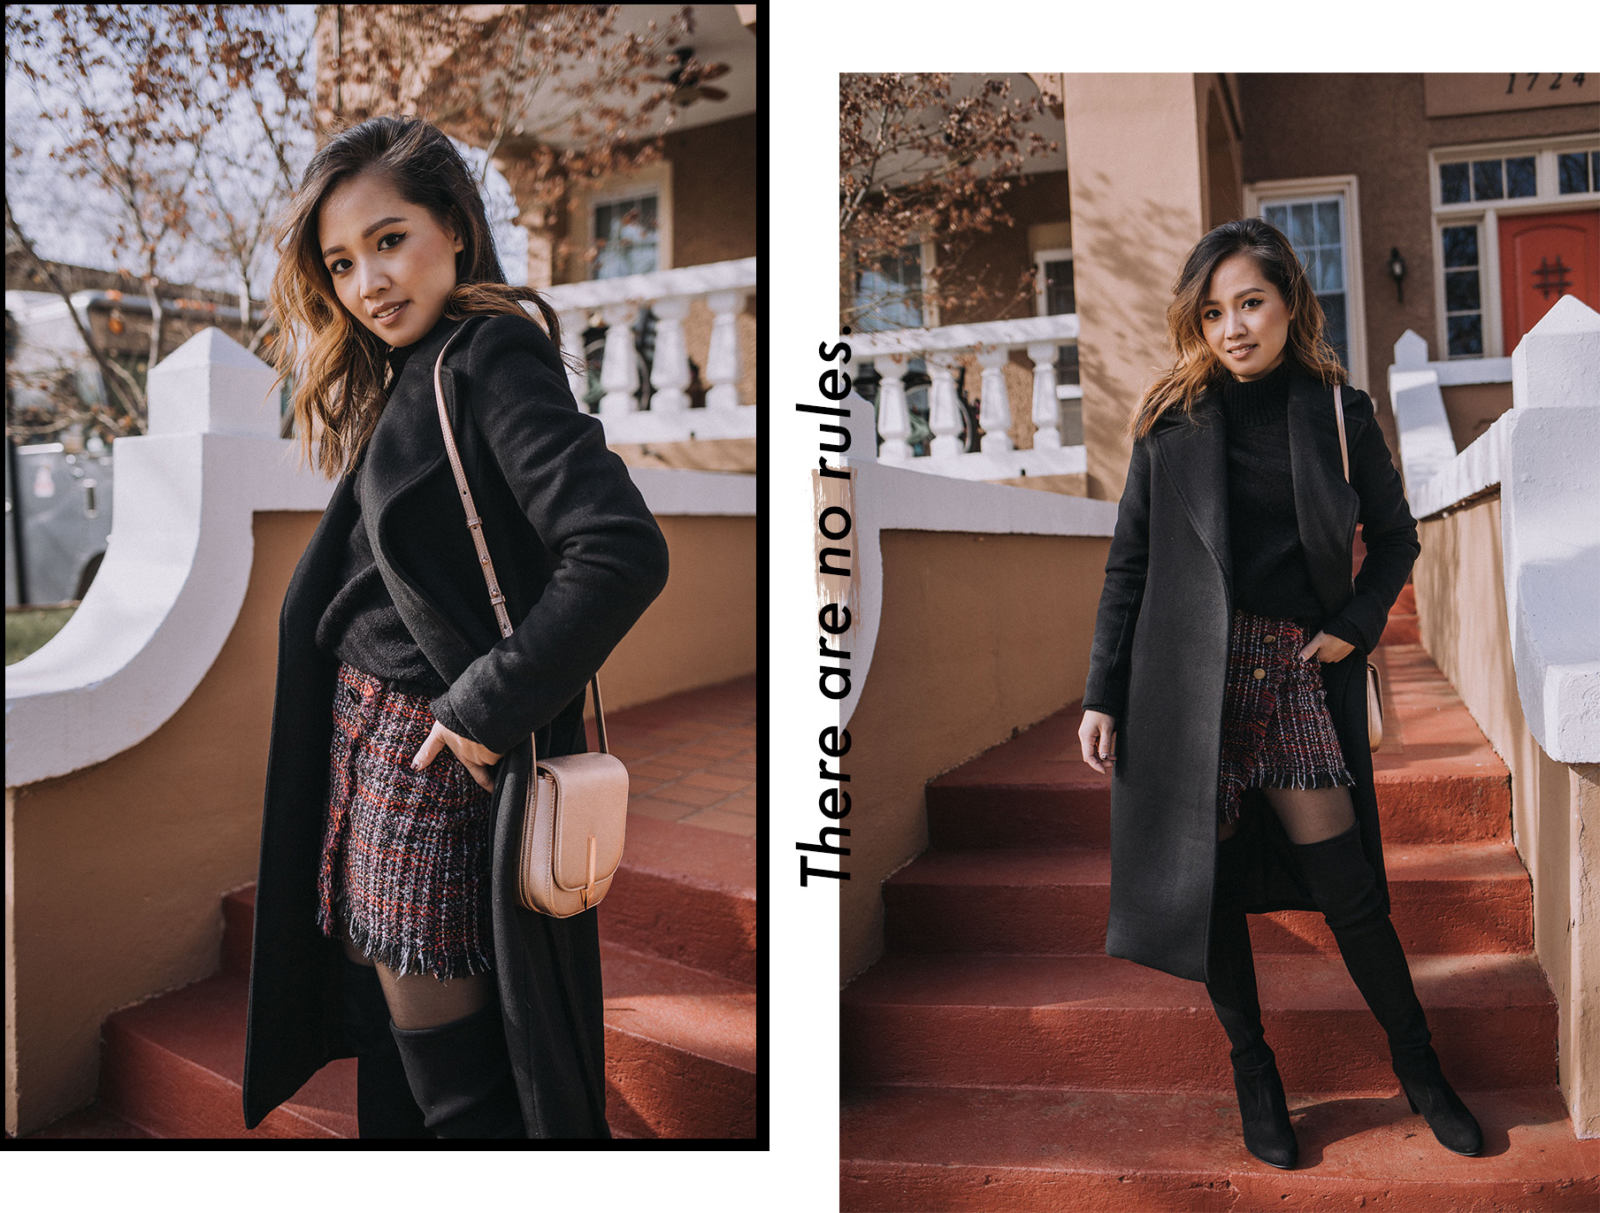 Your Ultimate Guide to Blogging 2018 Edition - Chic Winter Outfit in a turtleneck sweater, mini skirt, and stuart weitzman boots | le-jolie.com | Black top coat, feminine style, winter fashion, winter outfits, winter look, tweed skirt, tweed mini, bershka, karen walker, metallic trend, metallic handbag, over the knee boots, otk boots, minimal style, asian blogger, influencer style, turtleneck sweater outfit, black turtleneck, fashion collage, blogger collage, fashion layout, best blogging tips, fashion industry, blogging industry, how to become a blogger, photography tips